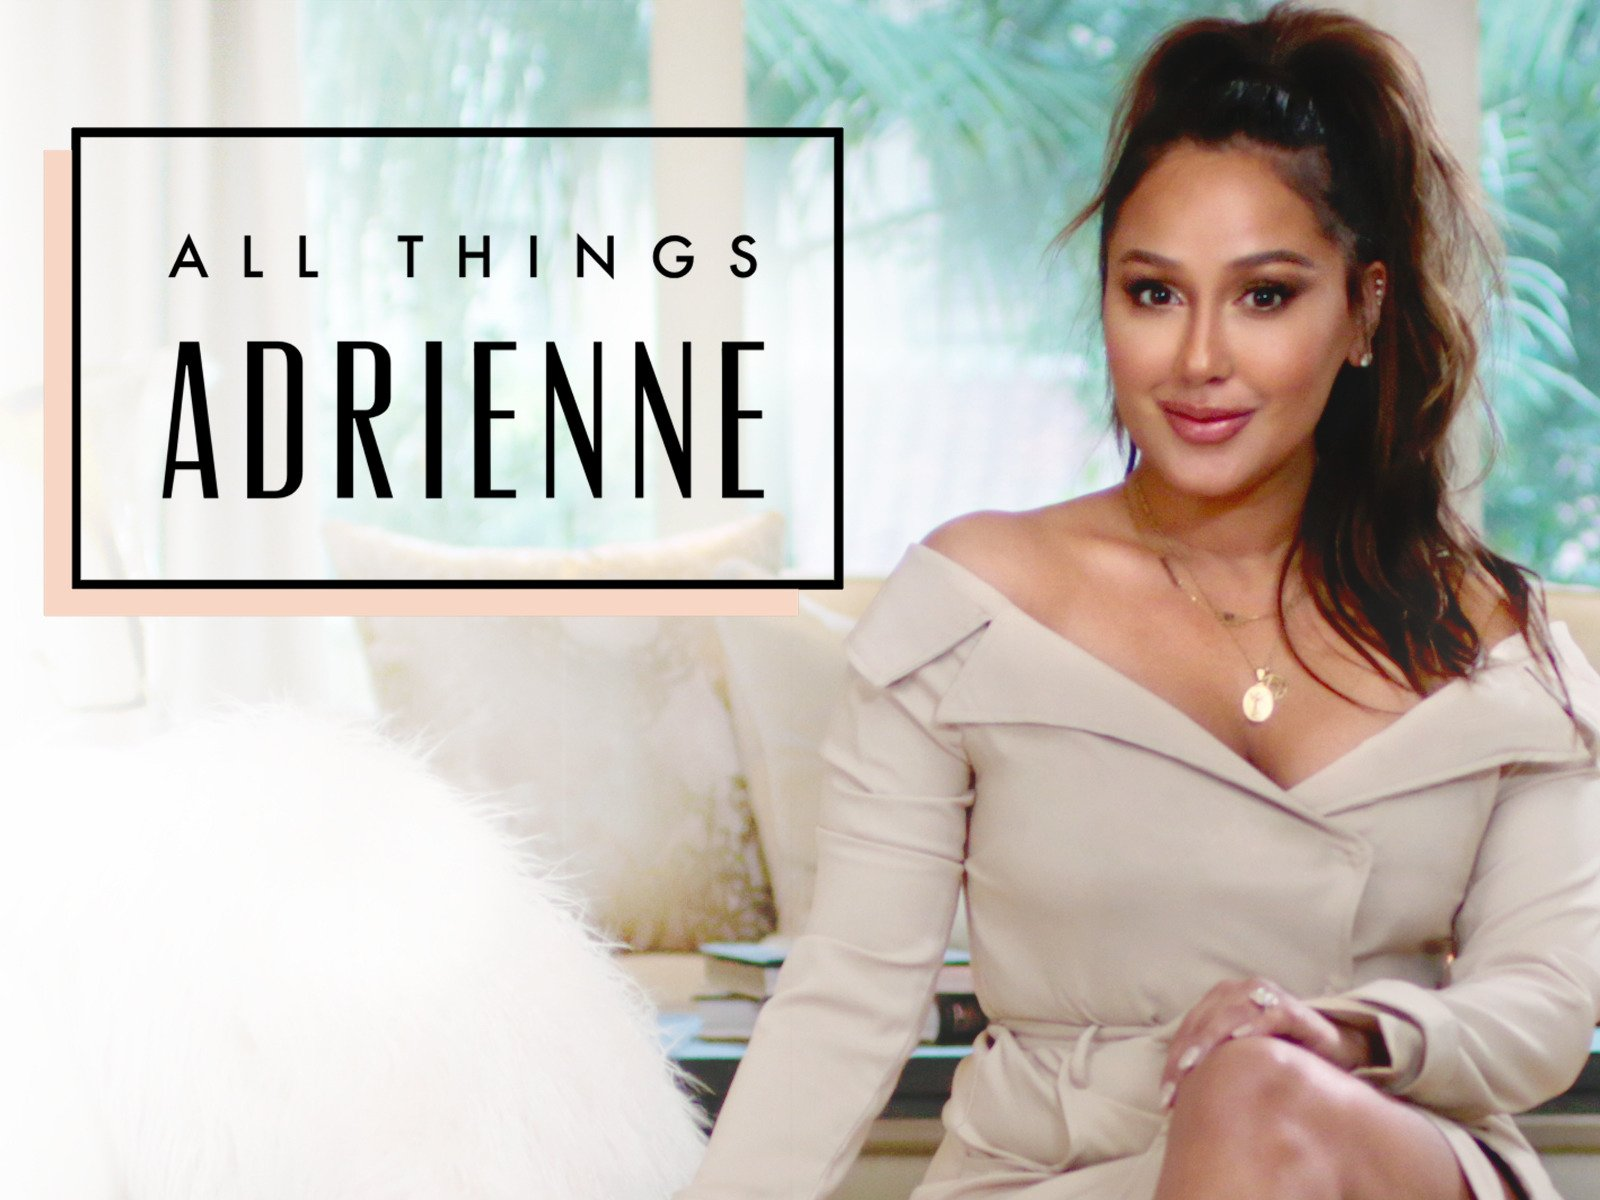 All Things Adrienne - Season 1